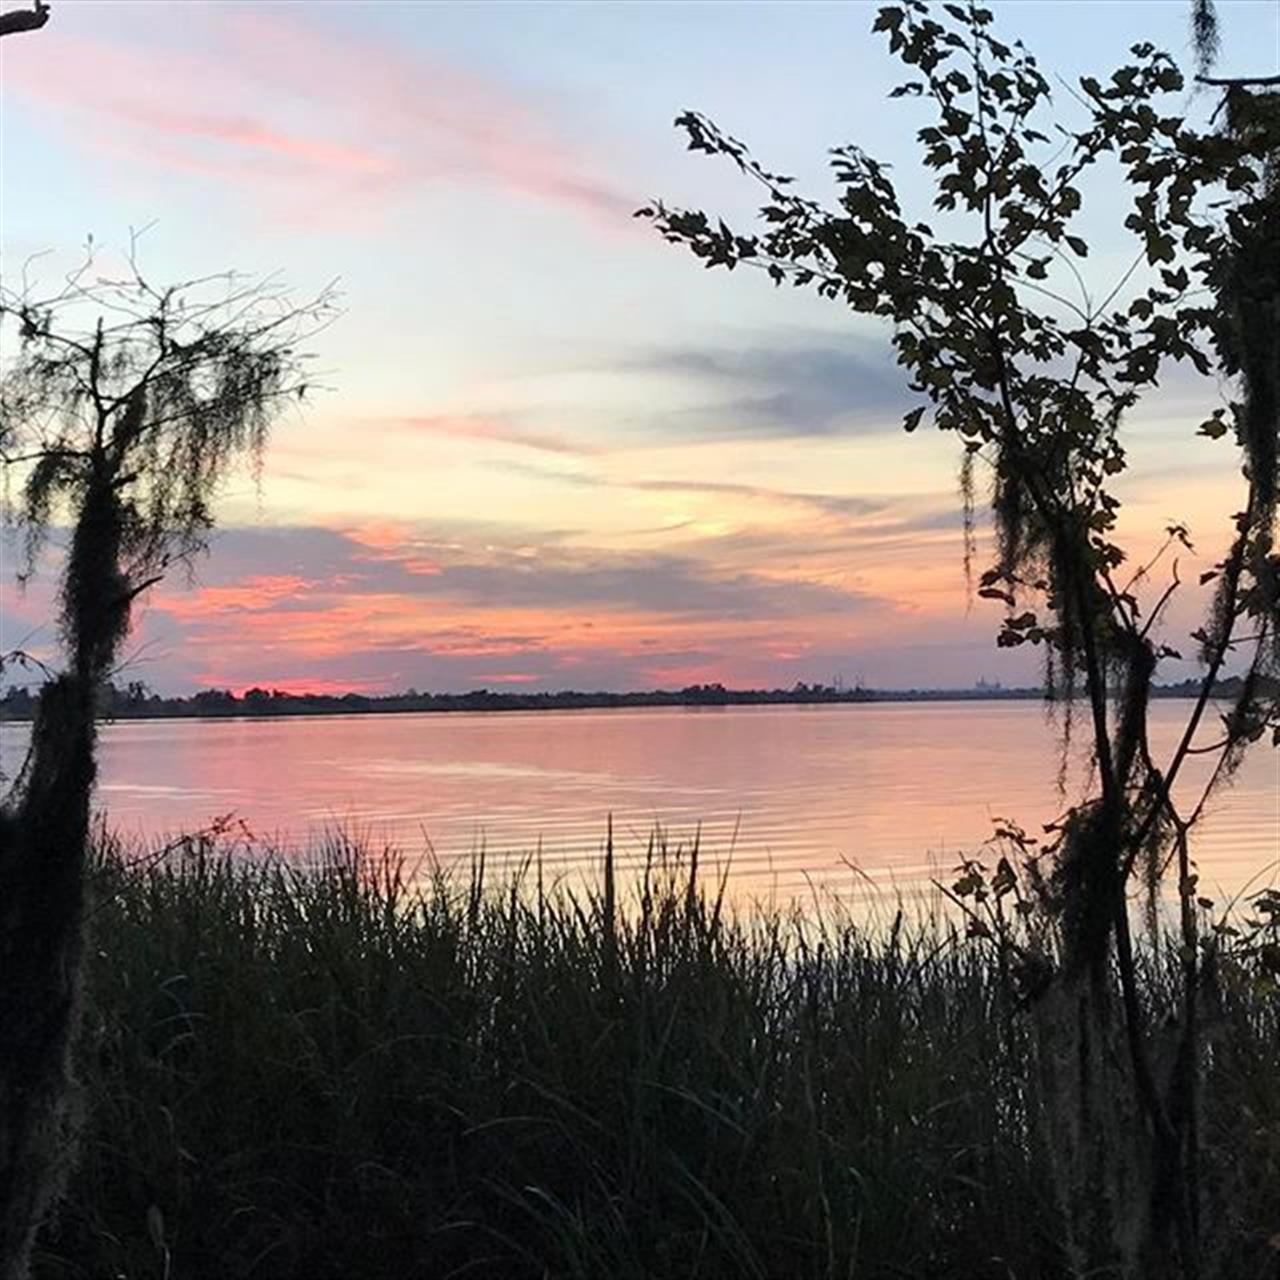 Name a place with a more beautiful sunset than #mobilebay. #youcant #itsperfect #findyourhappyplace #realestate #bellator #sunsets #newhome #leadingrelocal